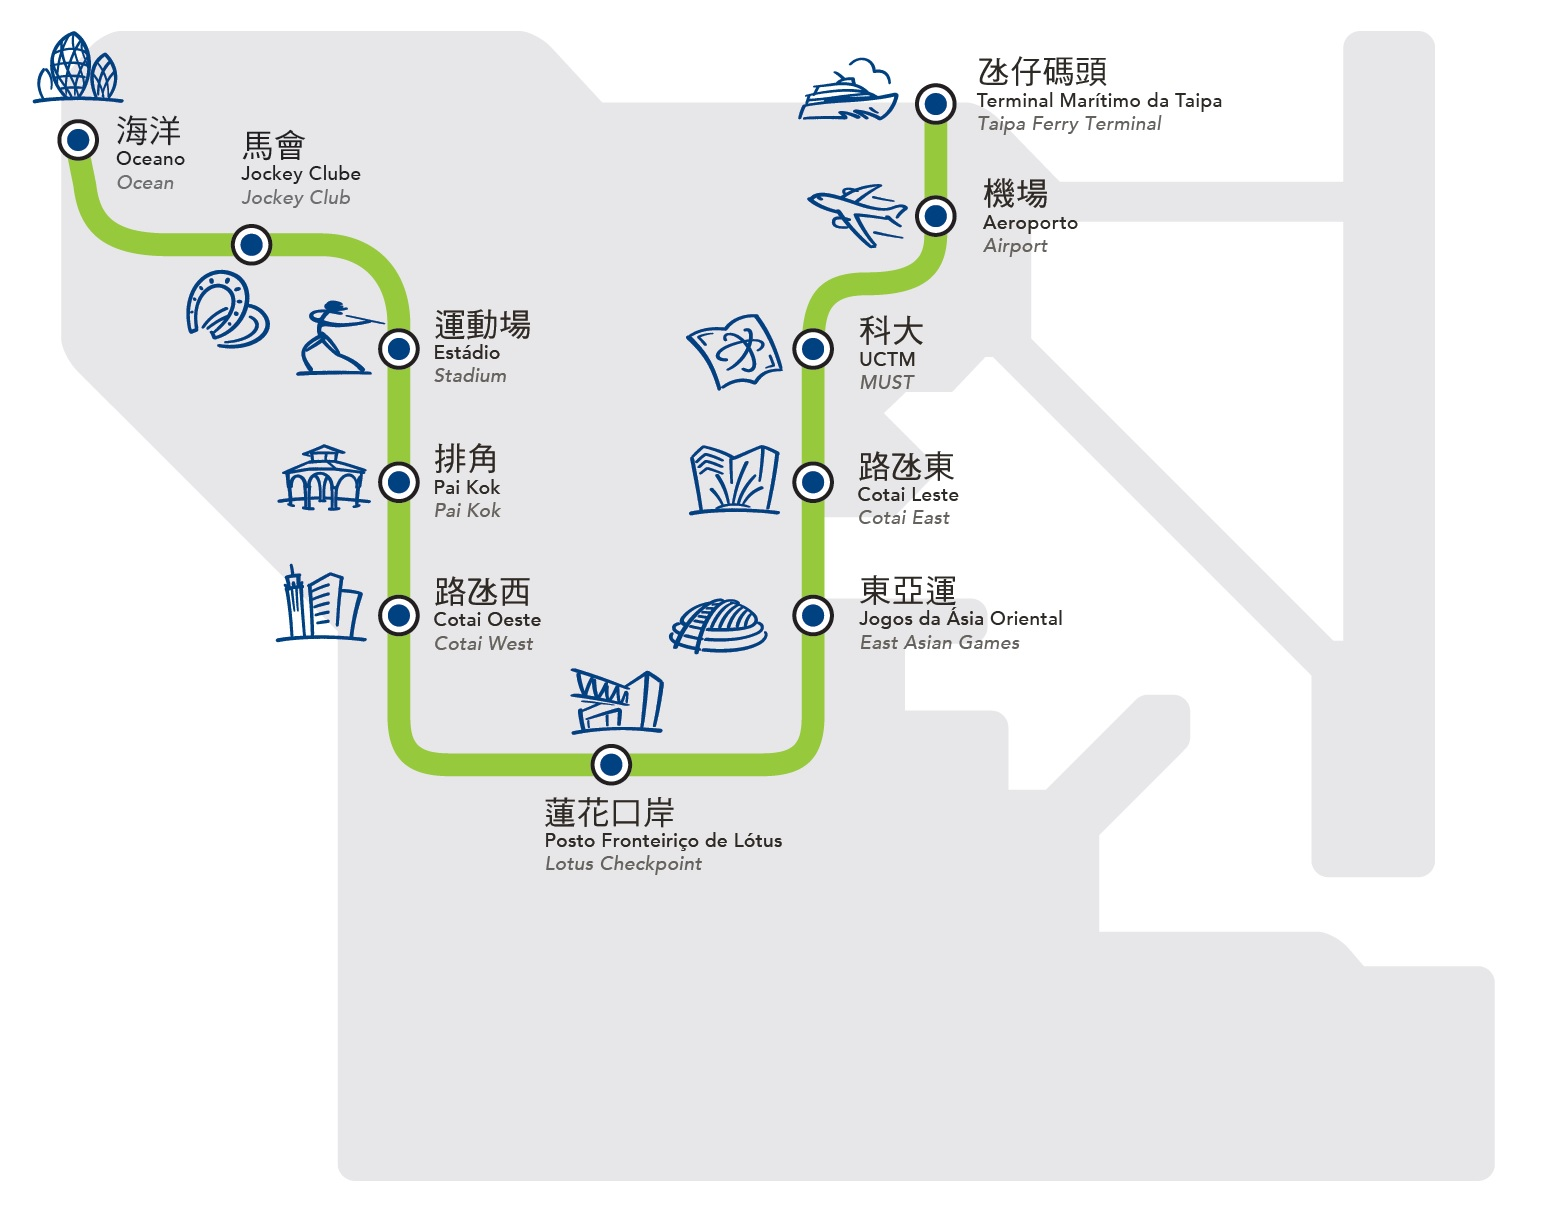 Macao Light Rail Route from Ocean Gardens to Taipa Ferry Terminal